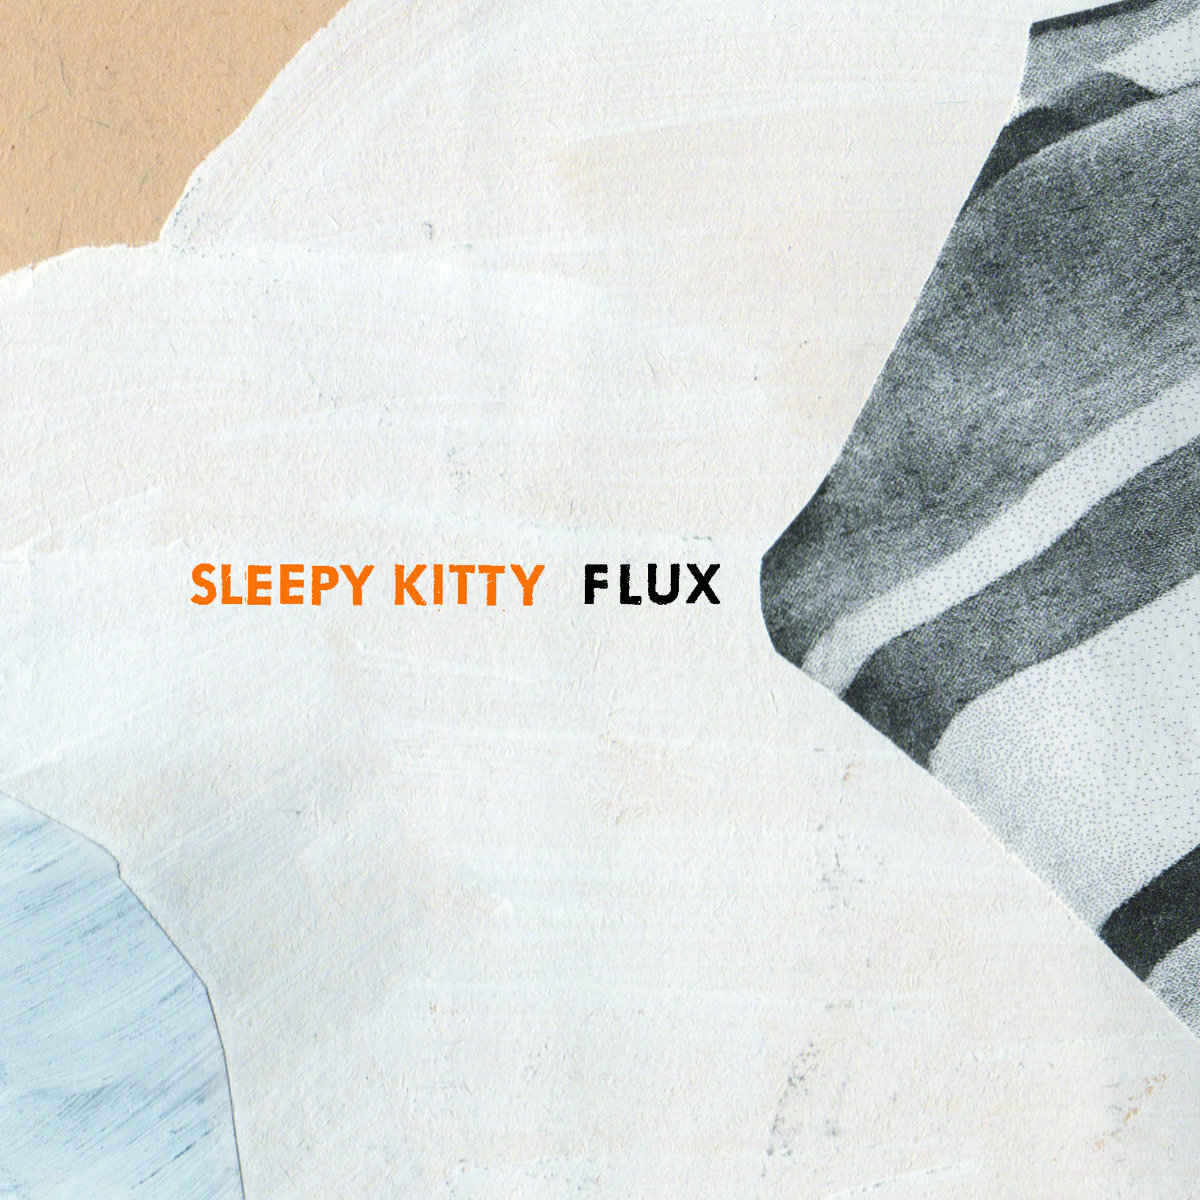 Flux - Sleepy Kitty